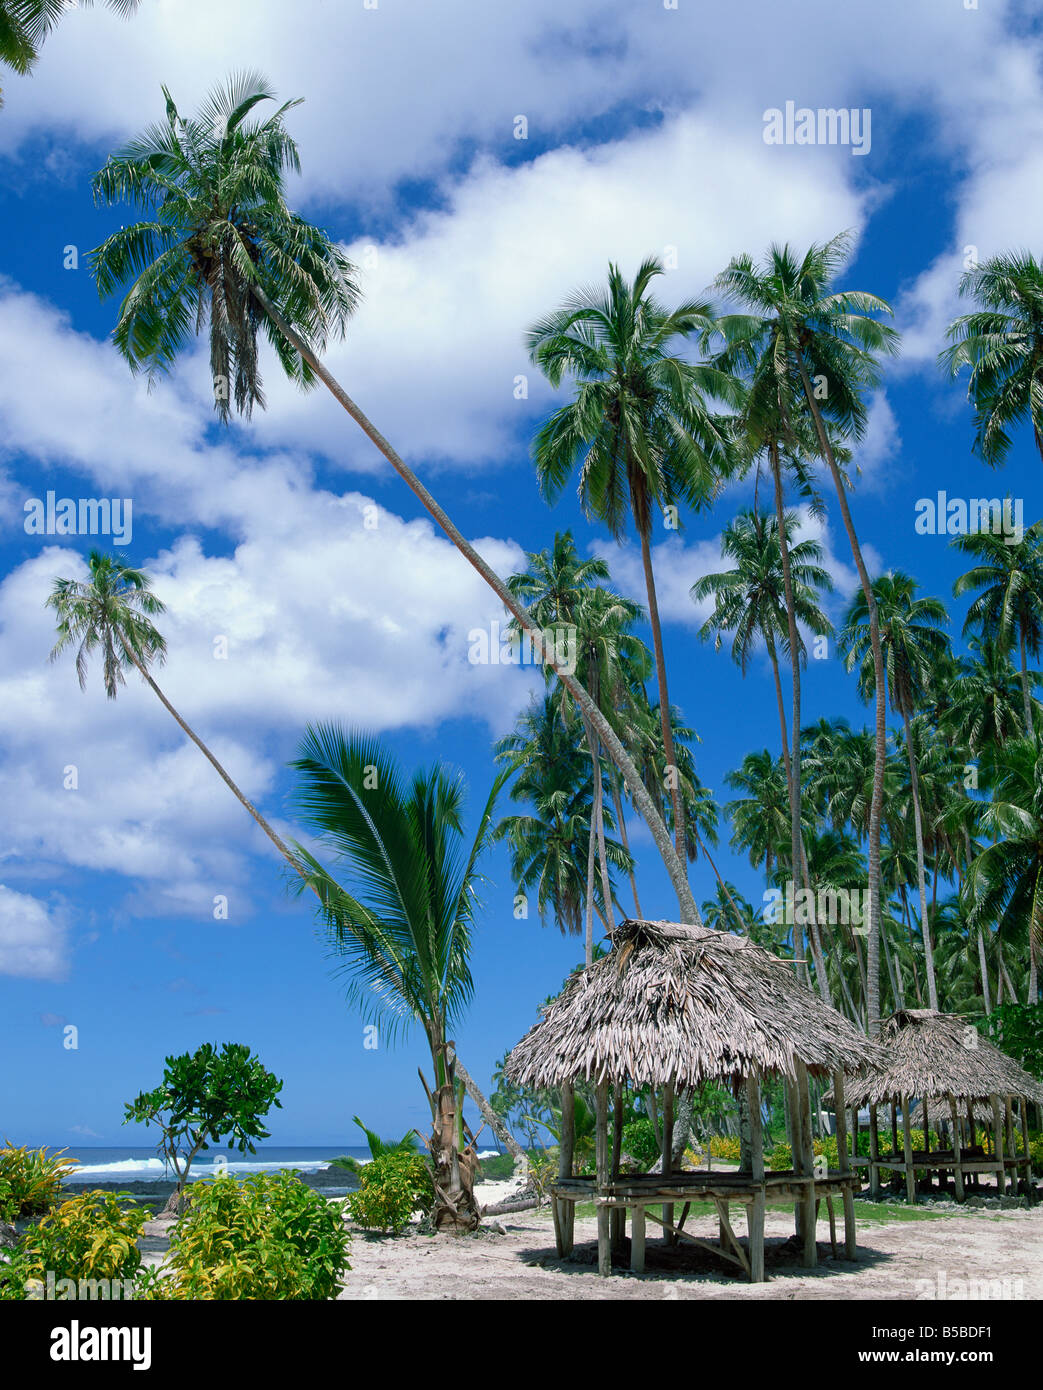 Palm trees and thatched shelters on the beach at Lefaga Western Samoa Pacific Islands Pacific - Stock Image